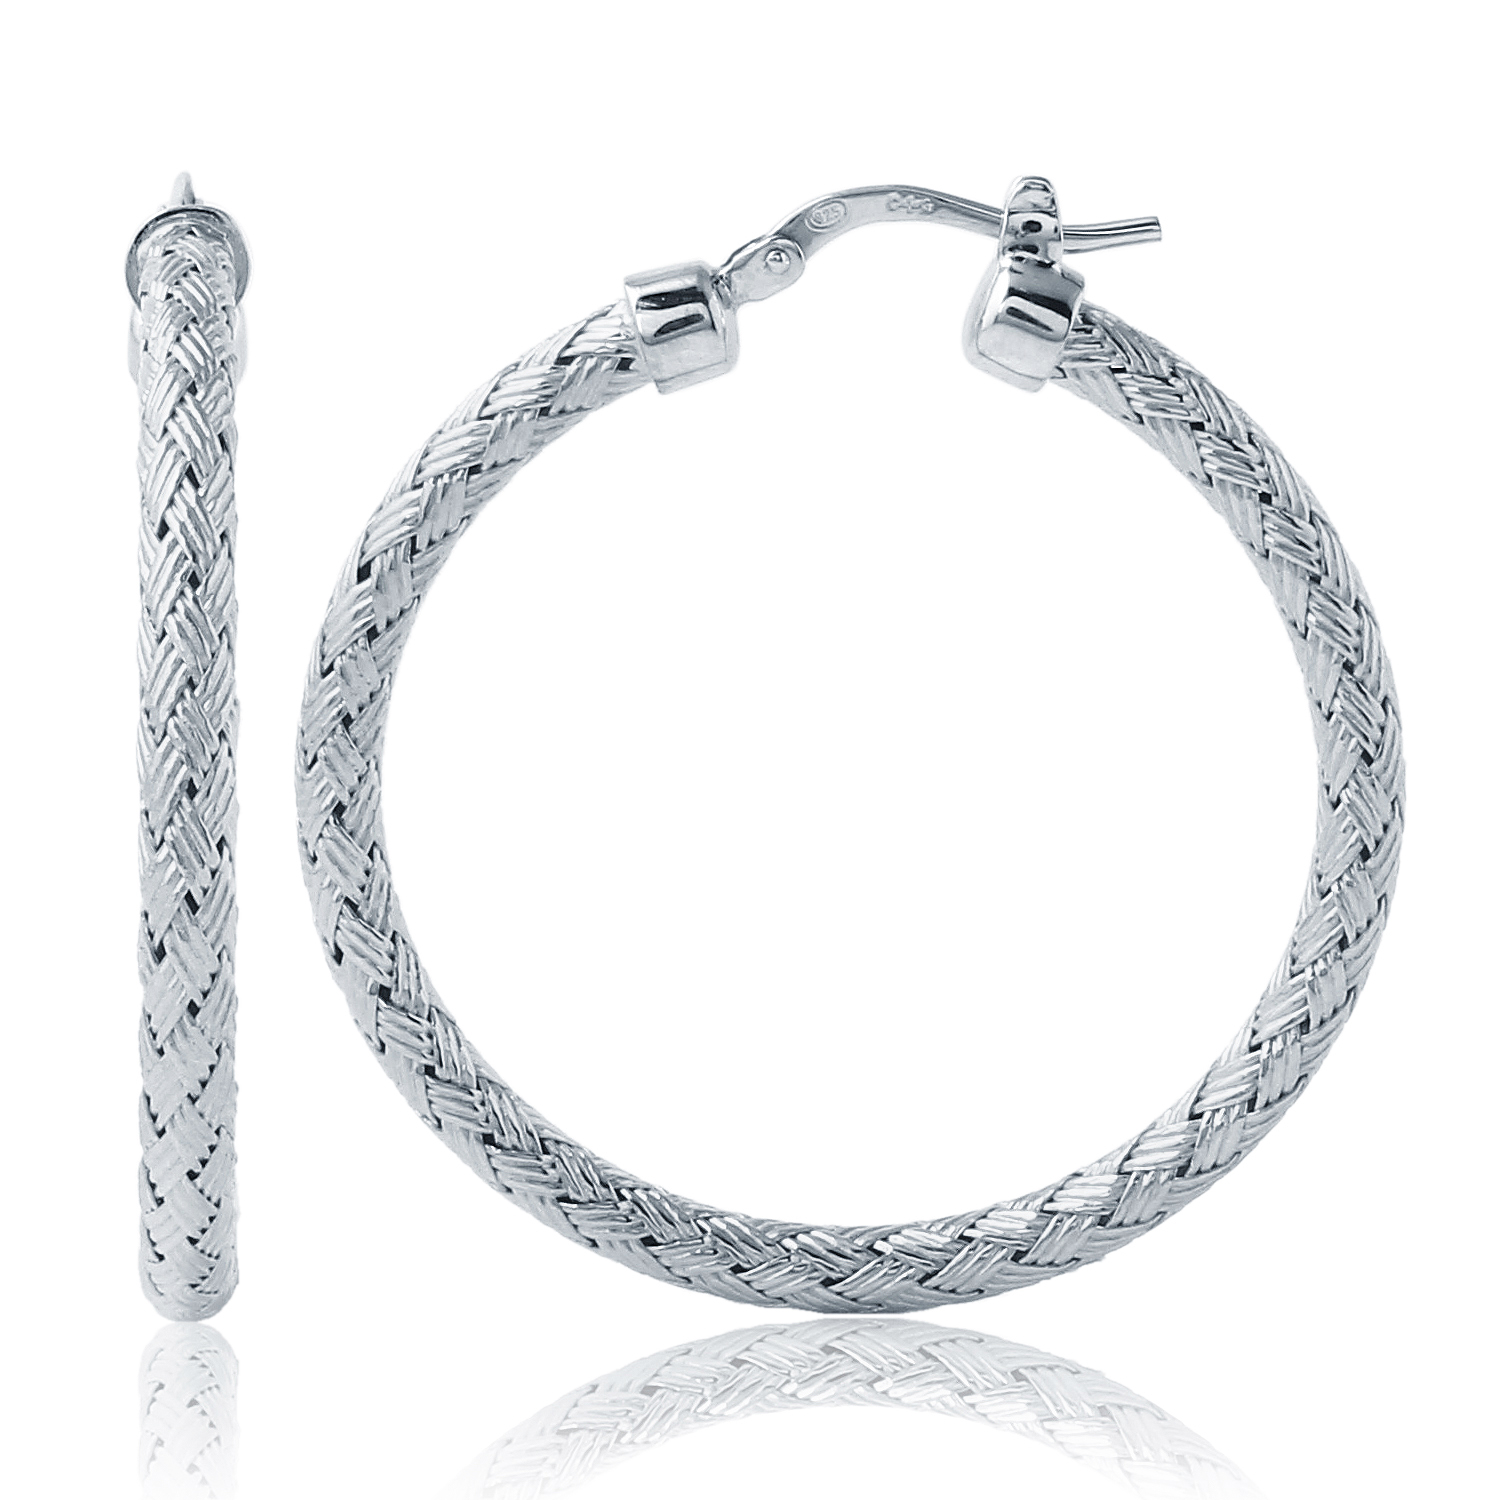 CHARLES GARNIER - Sterling Silver Hoop Earrings, 35mm